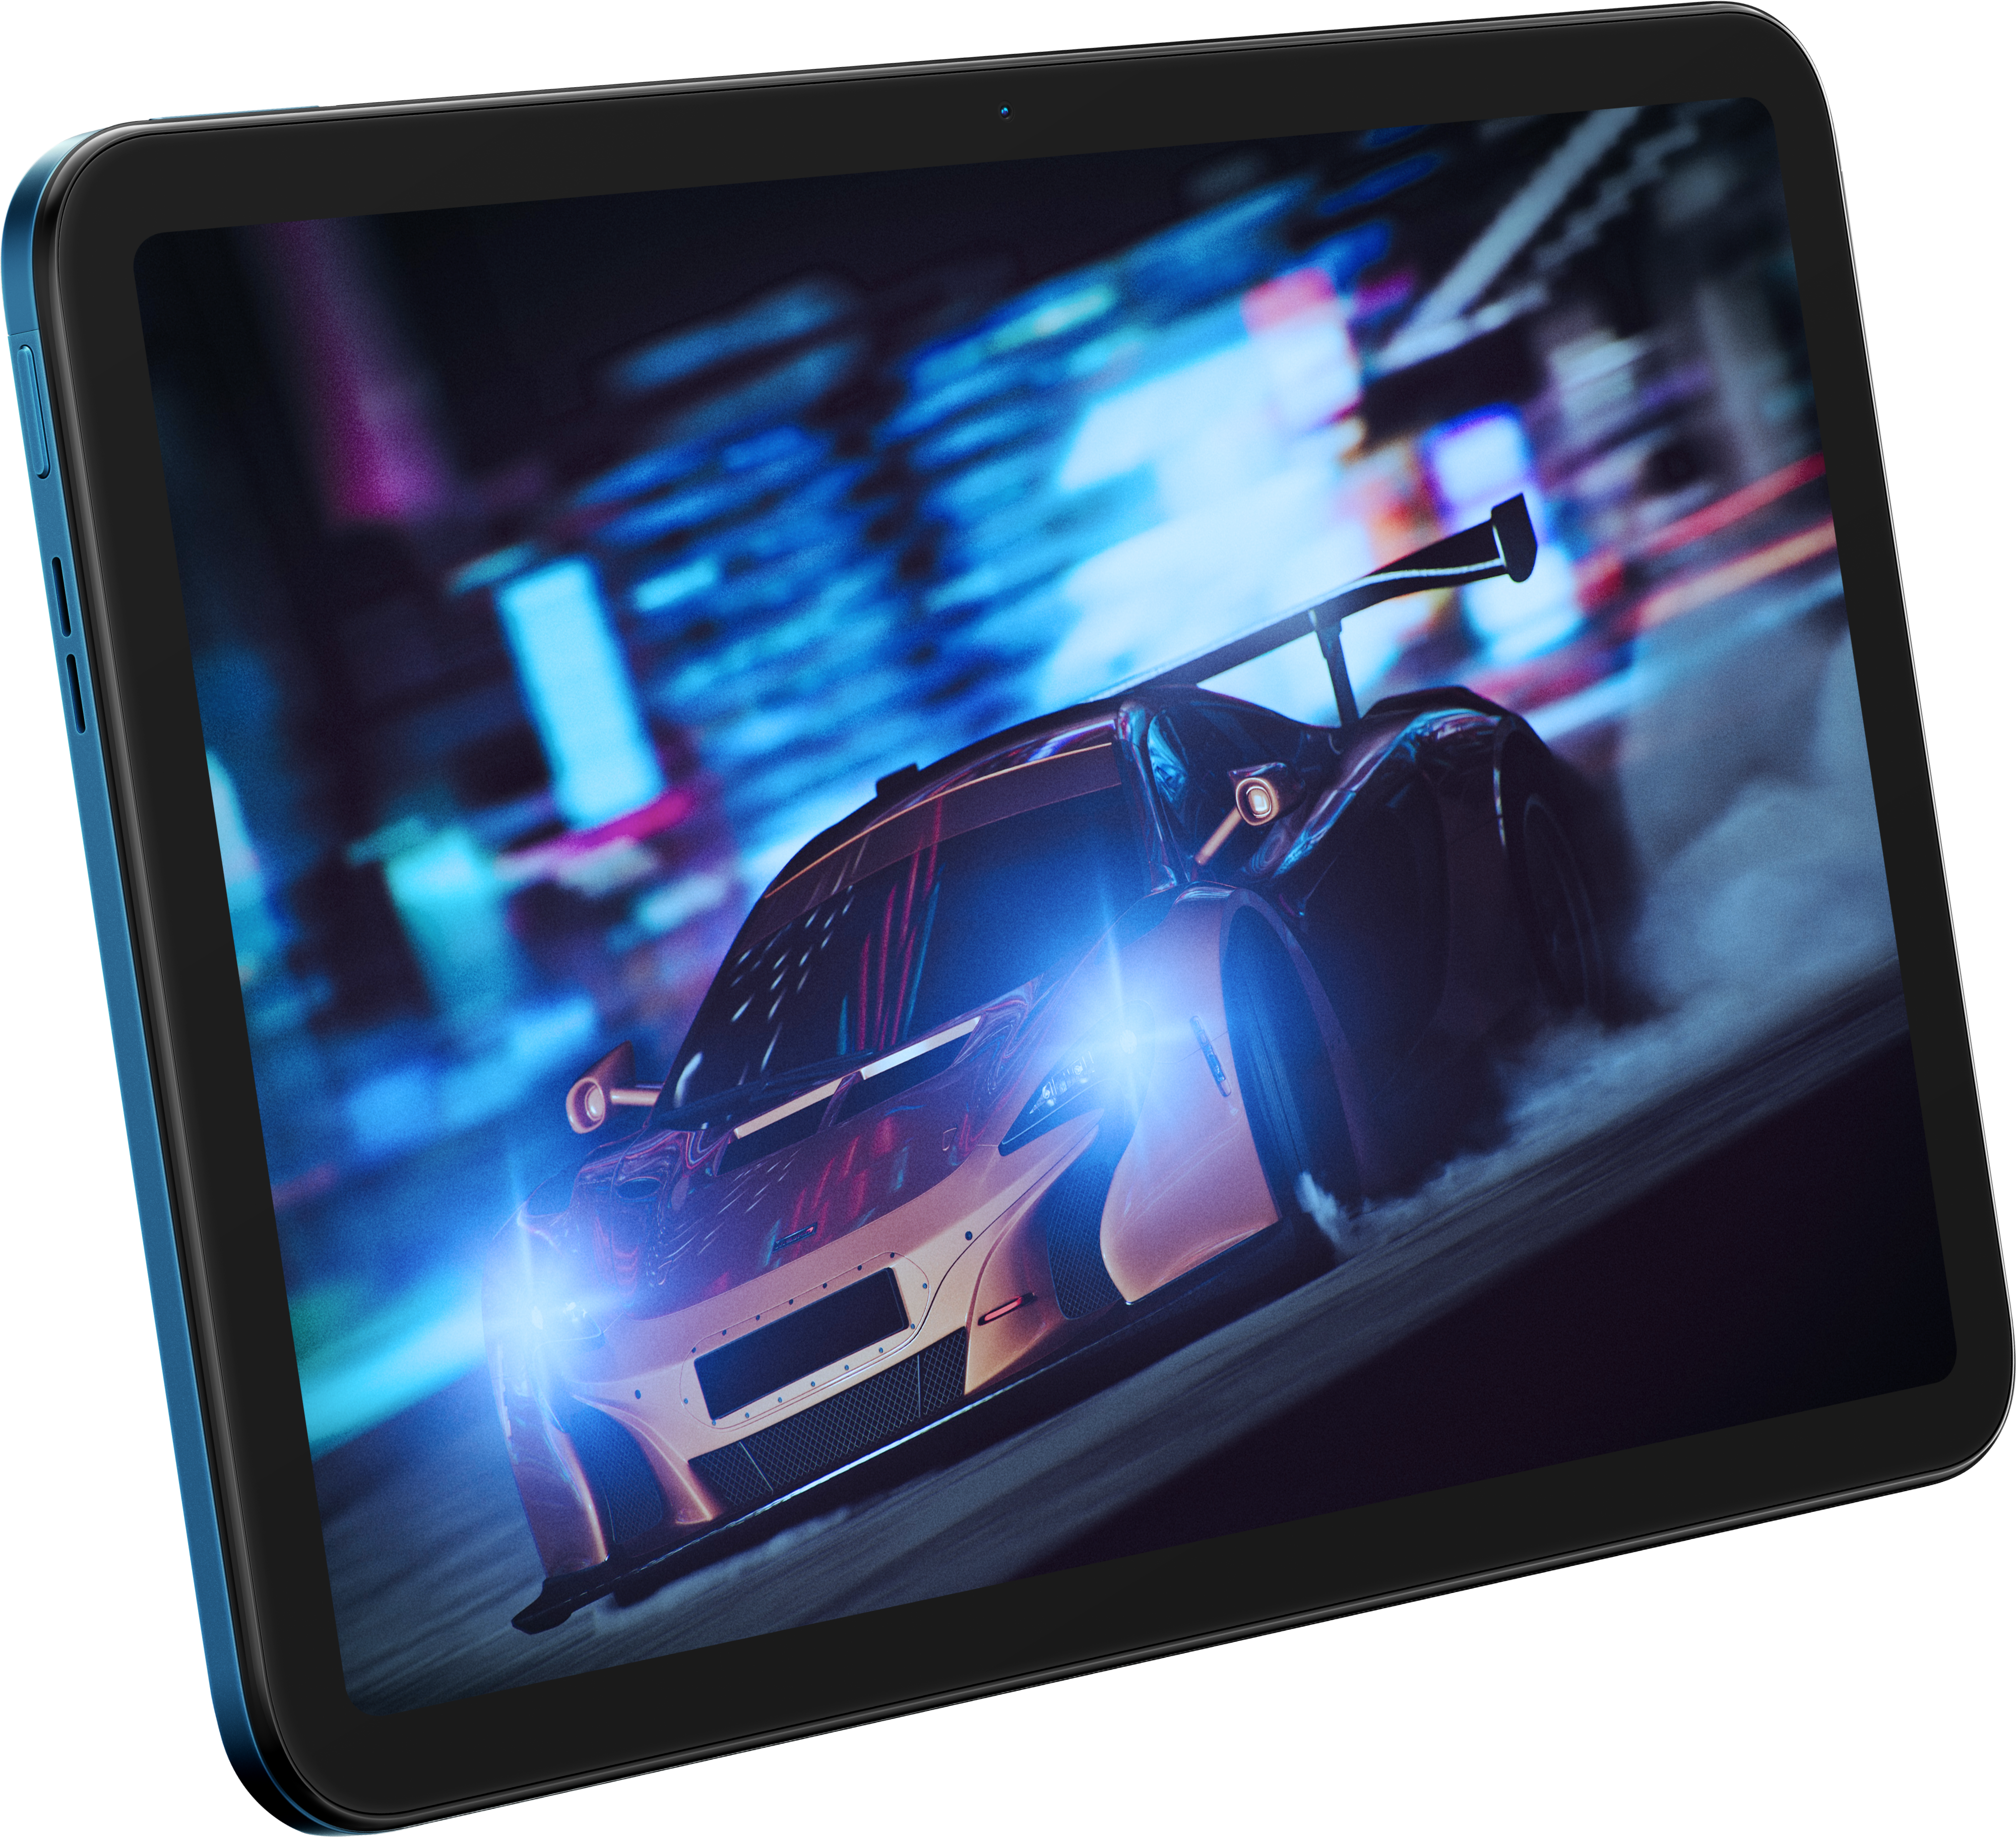 An image of a race car displayed on the Nokia T20 tablet